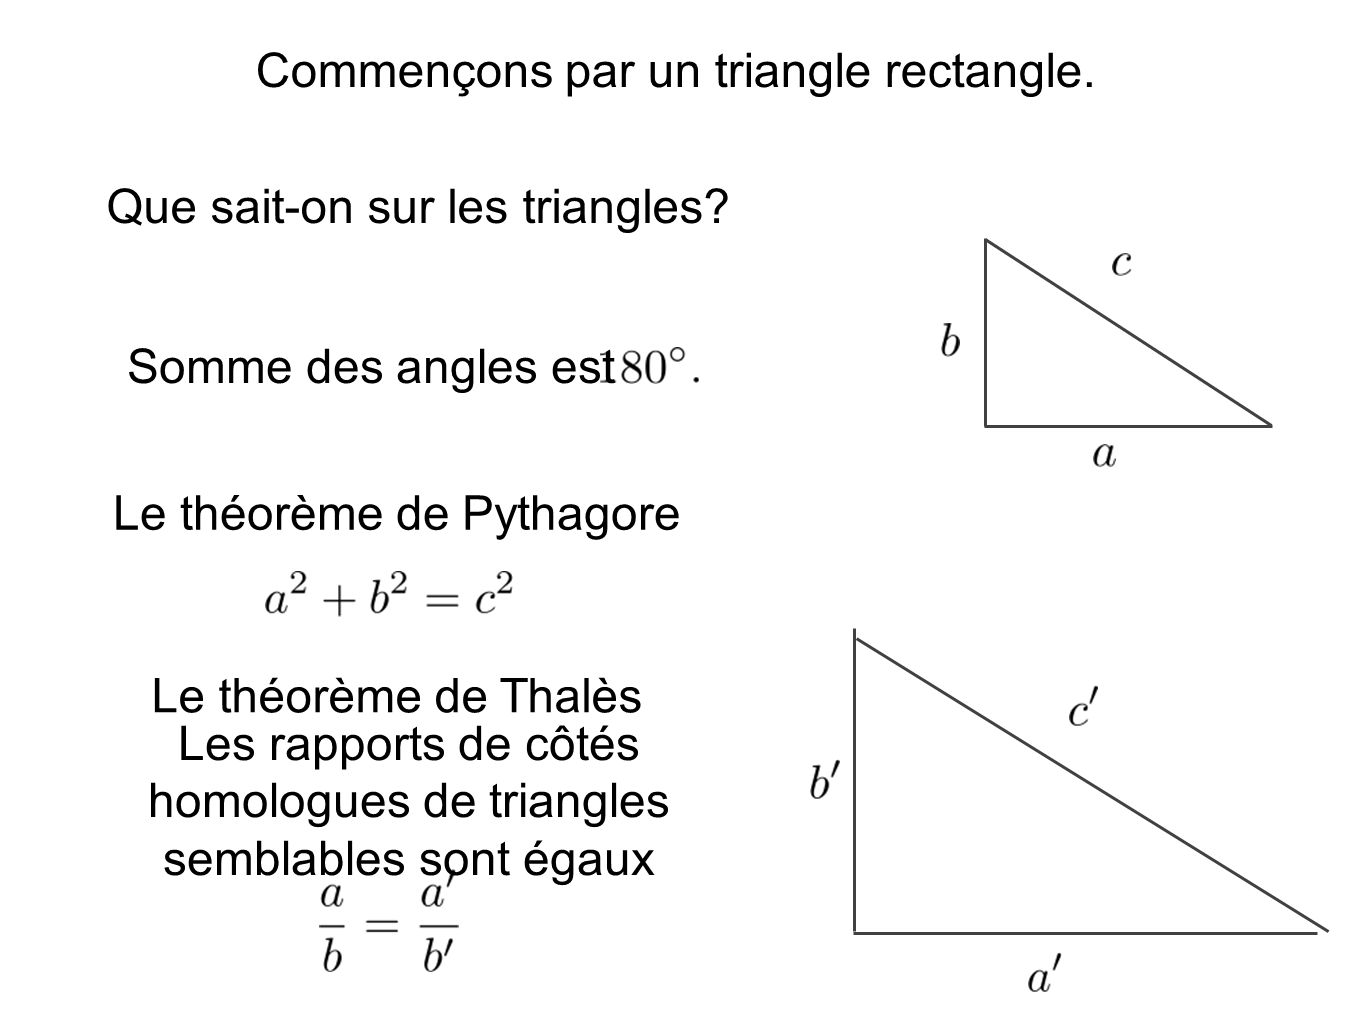 Commençons par un triangle rectangle.